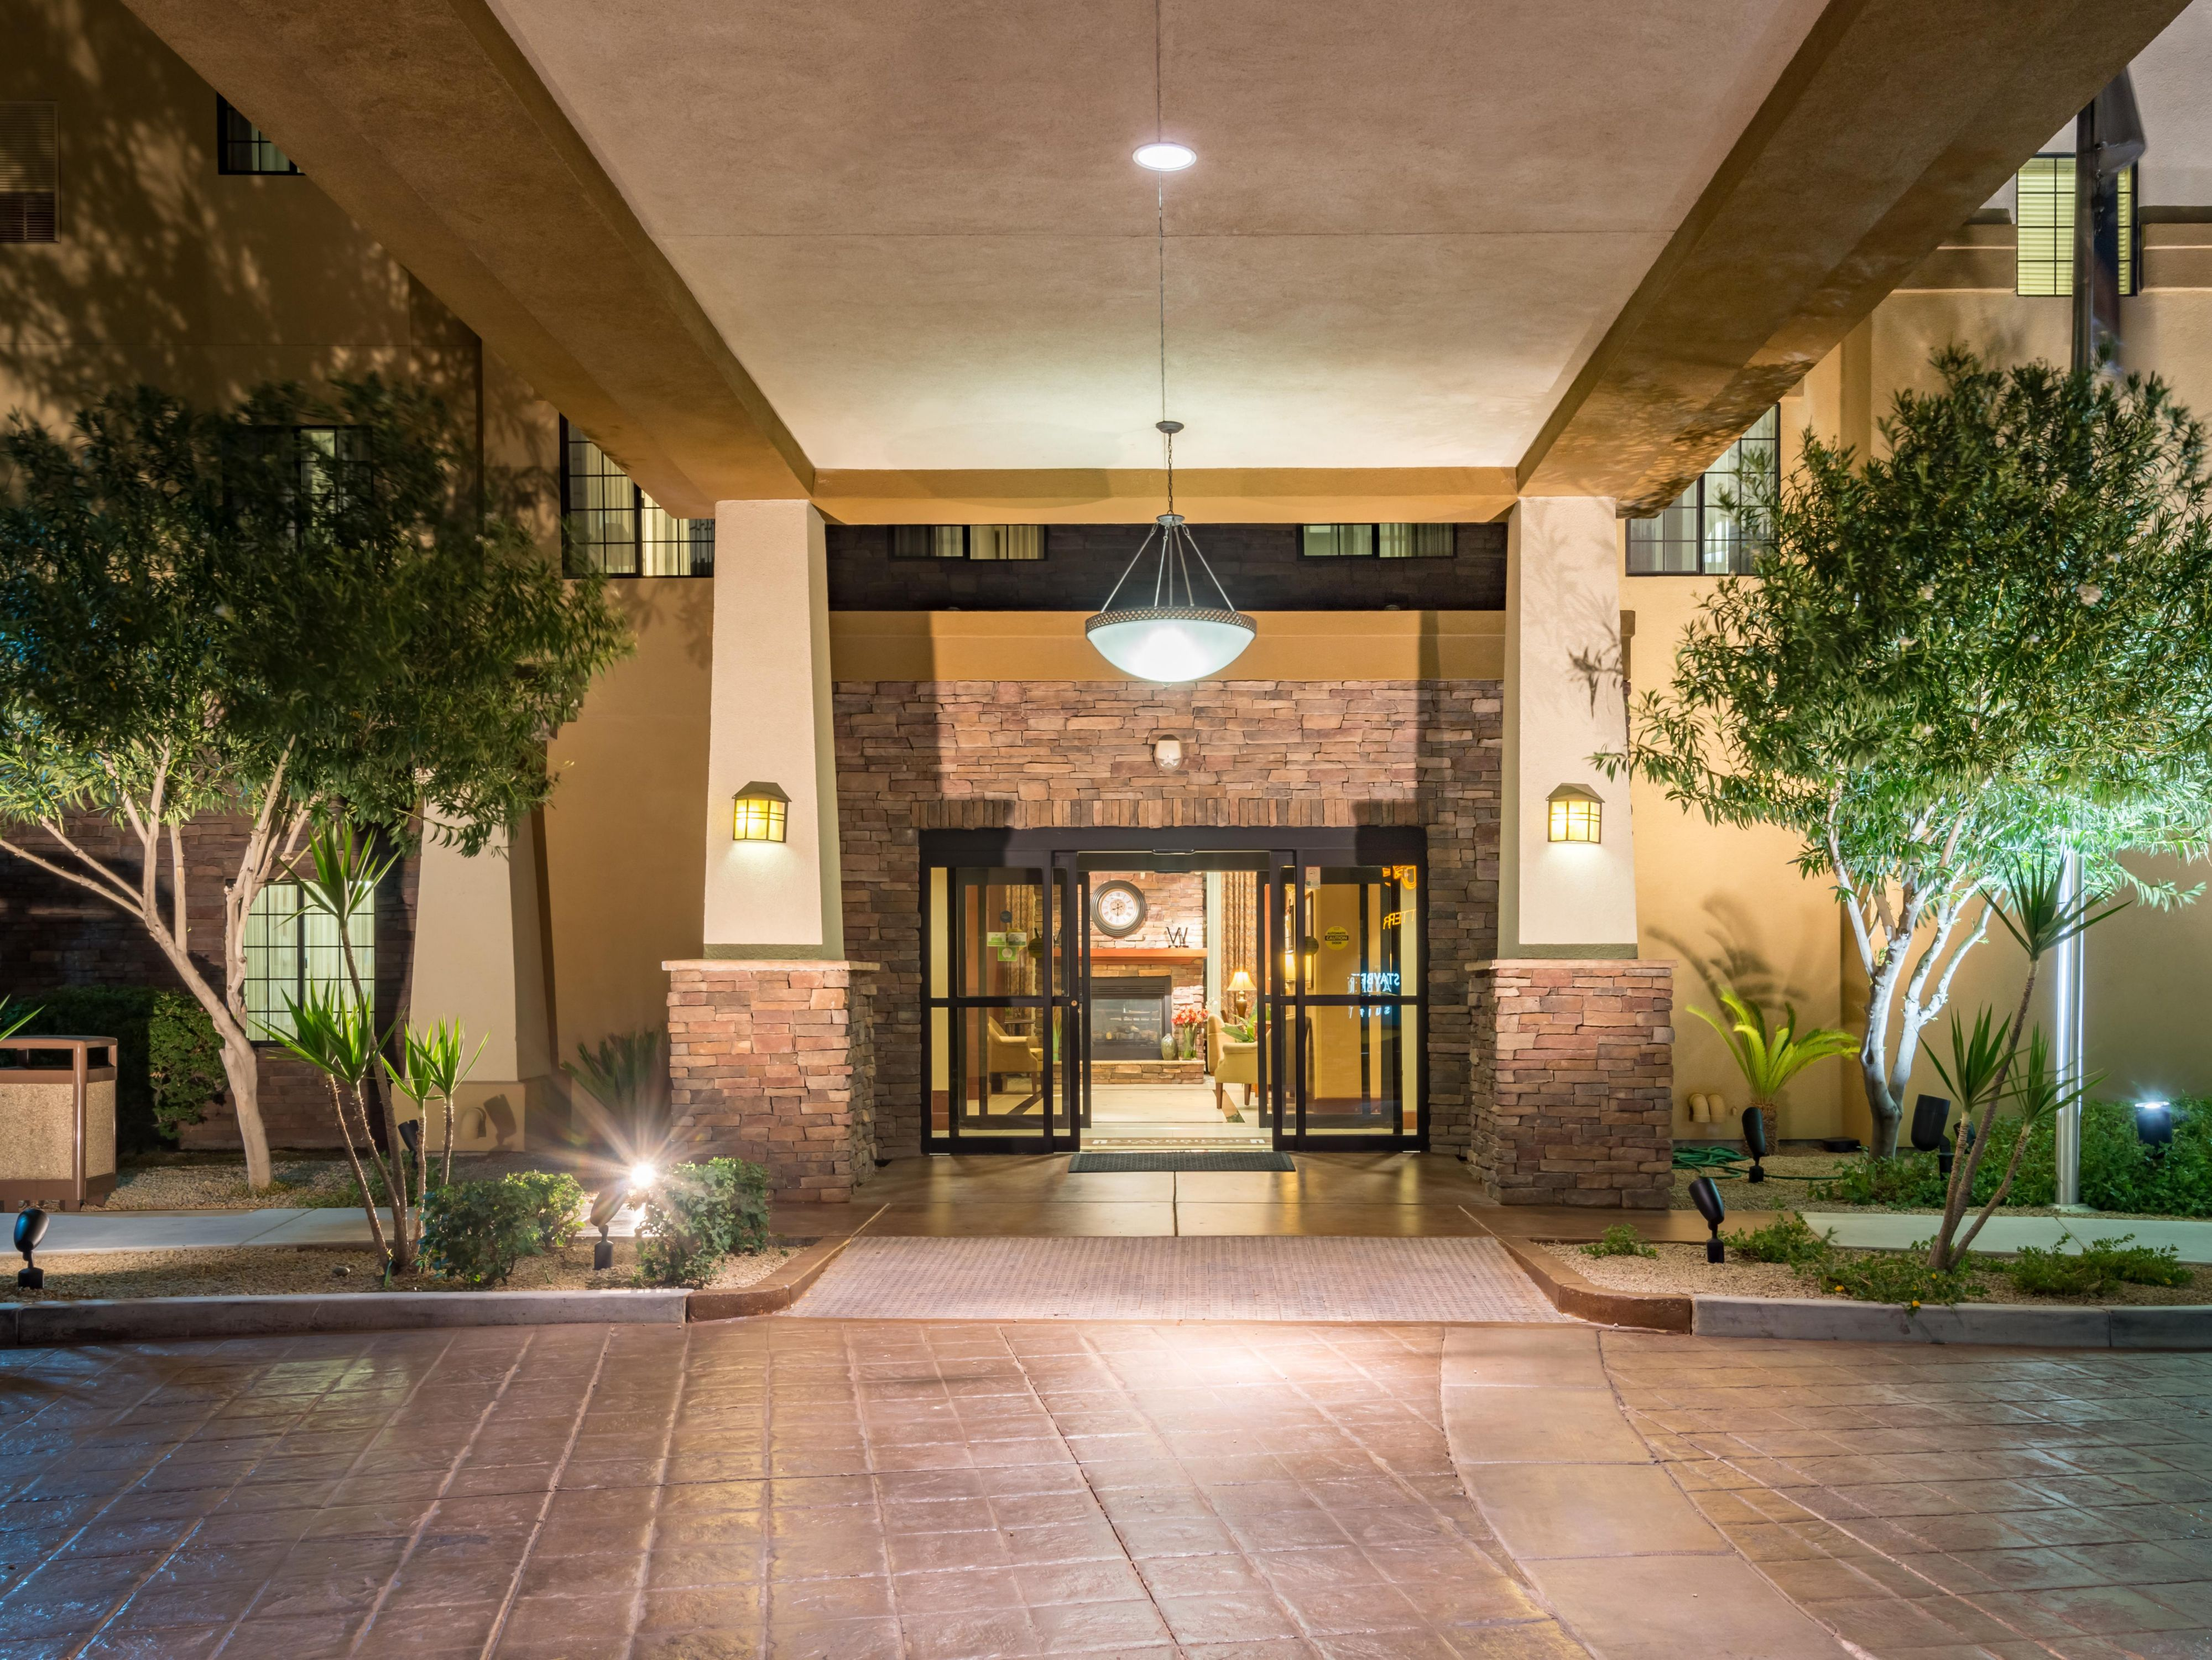 Glendale Hotels Staybridge Suites Phoenix Extended Stay Hotel In Arizona